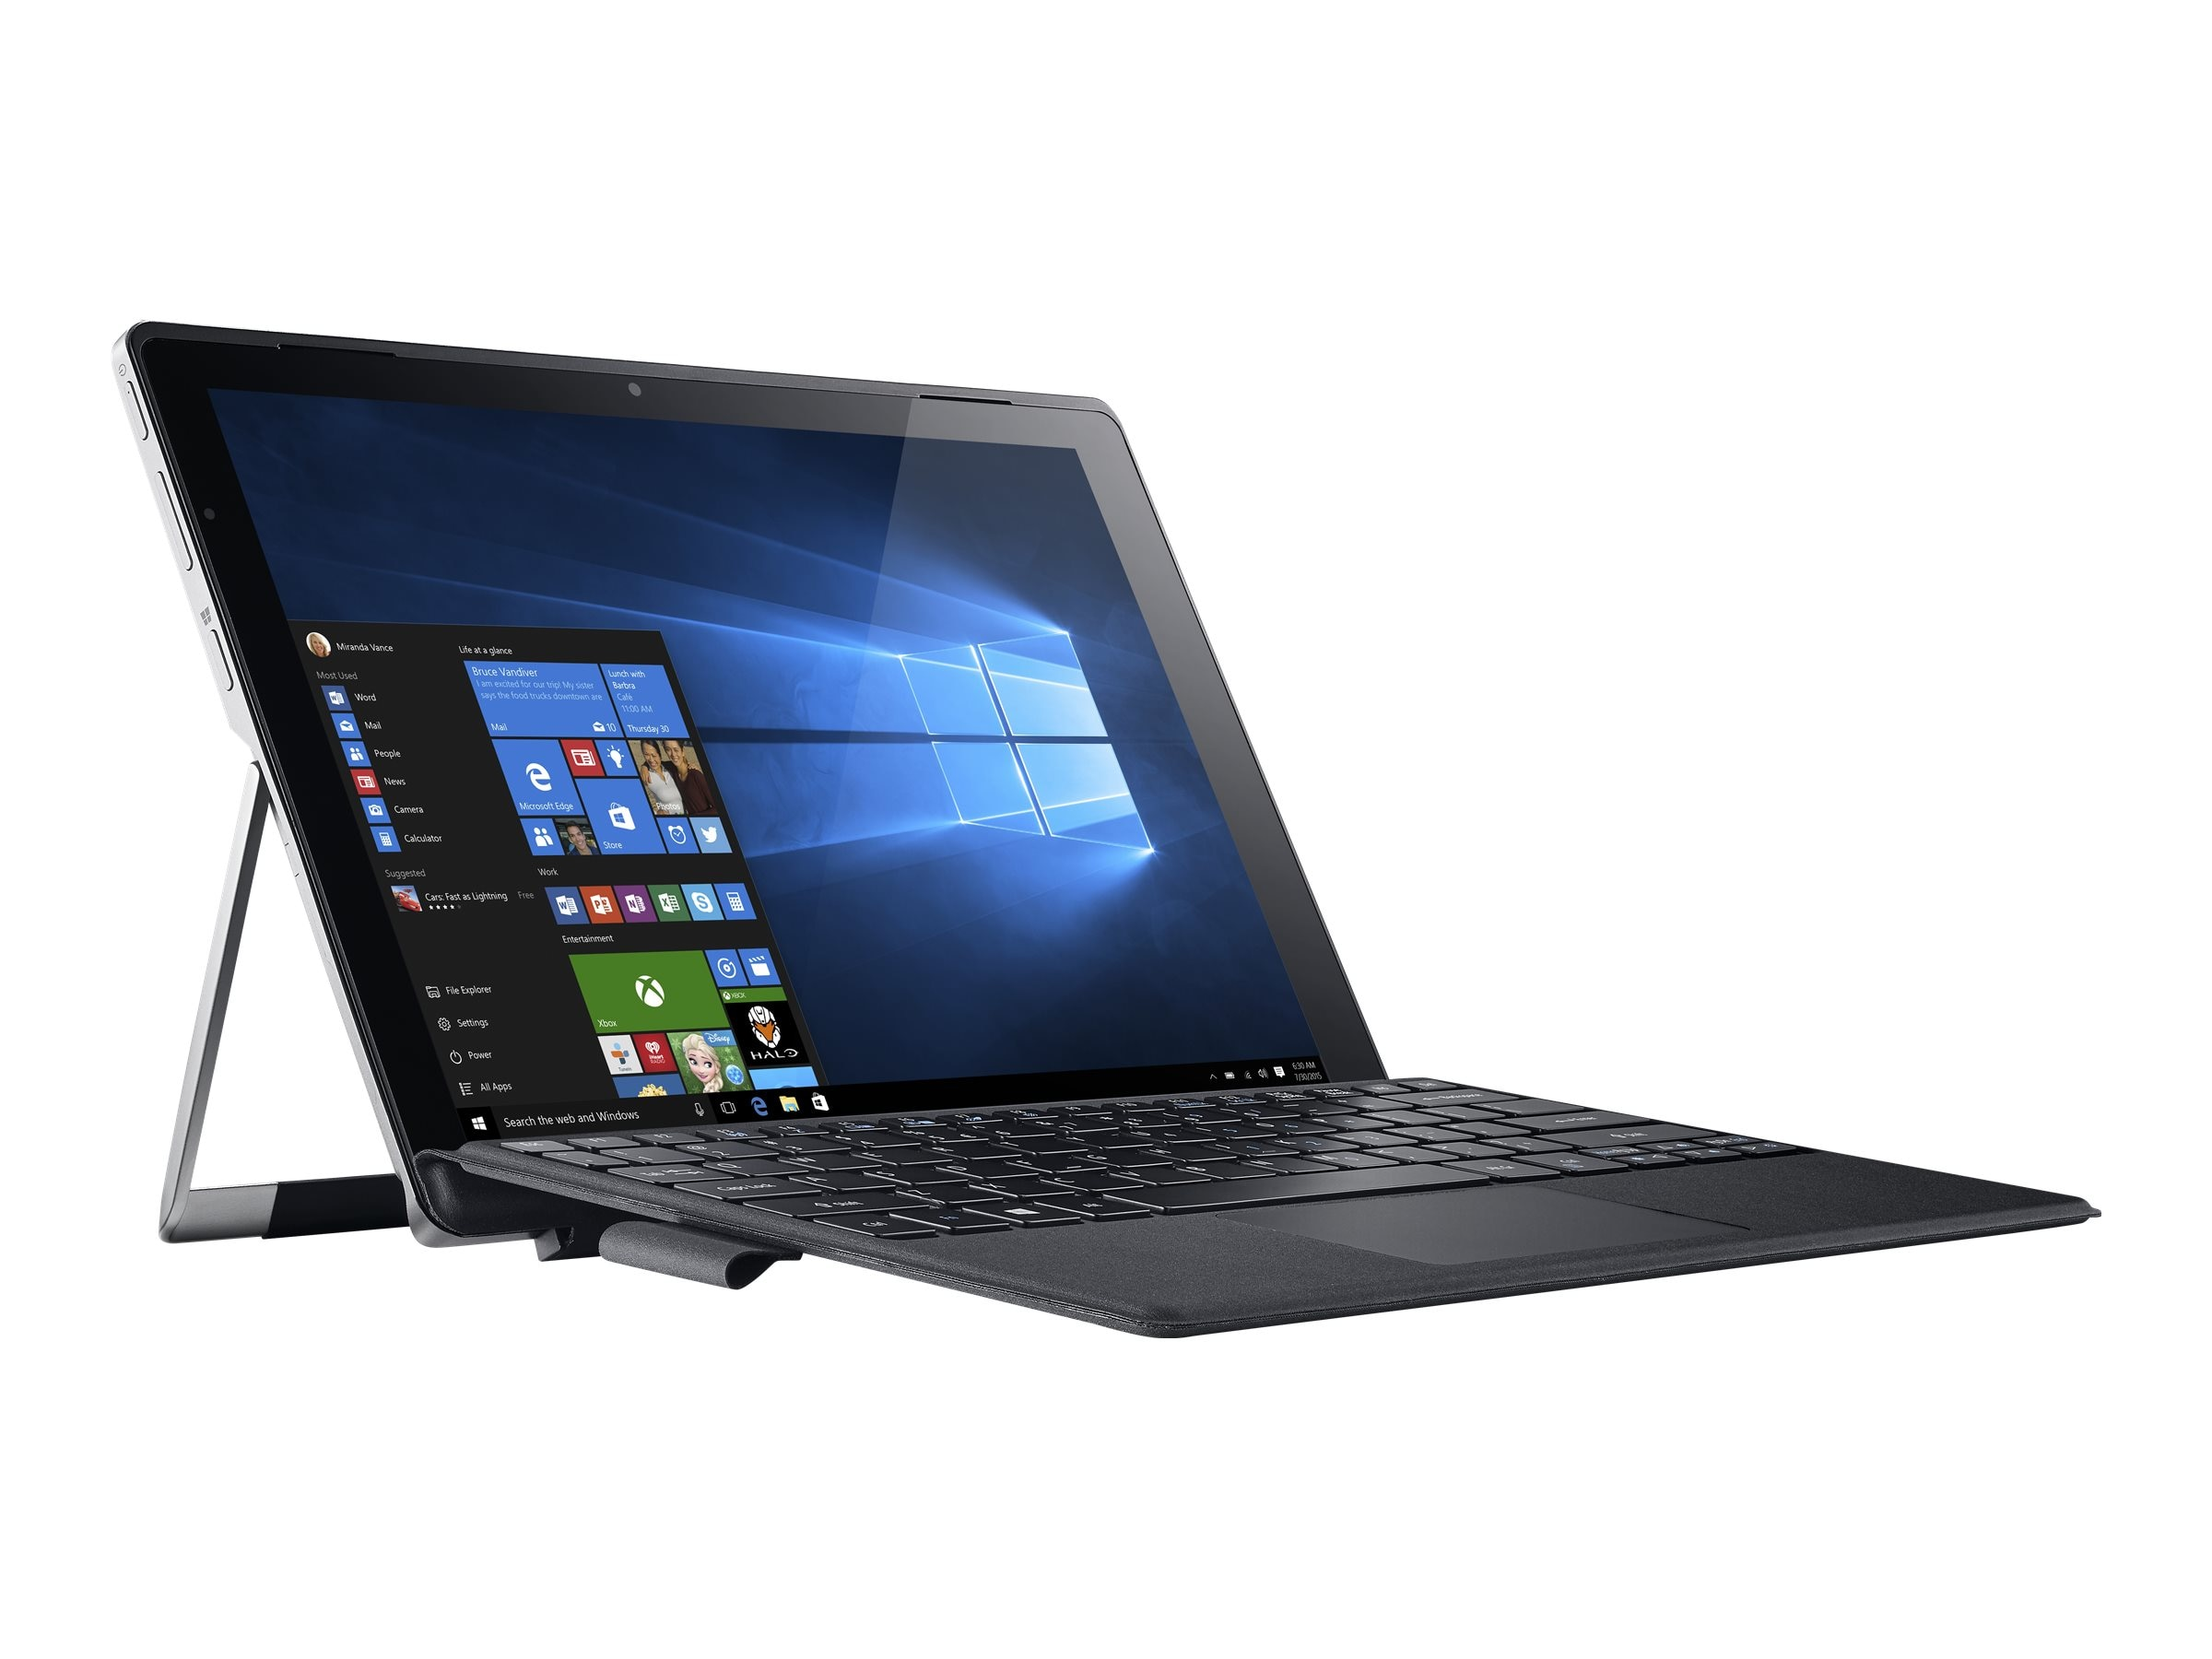 Acer Aspire Switch Alpha 12 SA5-271-78M8 2.5GHz processor Windows 10 Home Edition 64-bit, NT.LCDAA.014